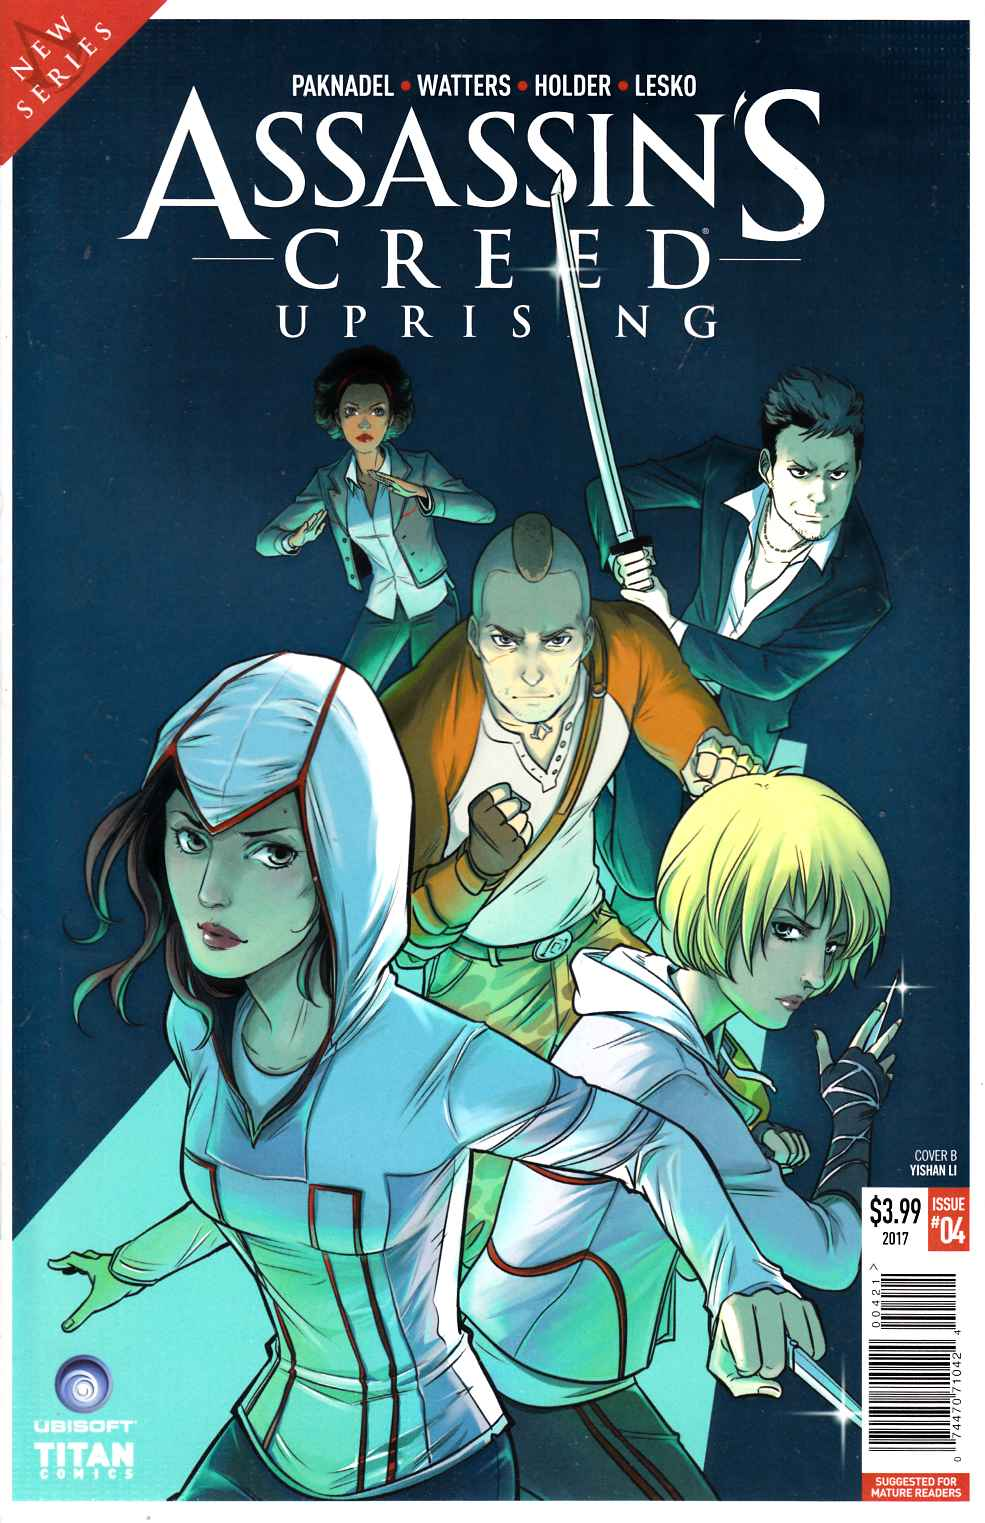 Assassins Creed Uprising #4 Cover B [Titan Comic] THUMBNAIL